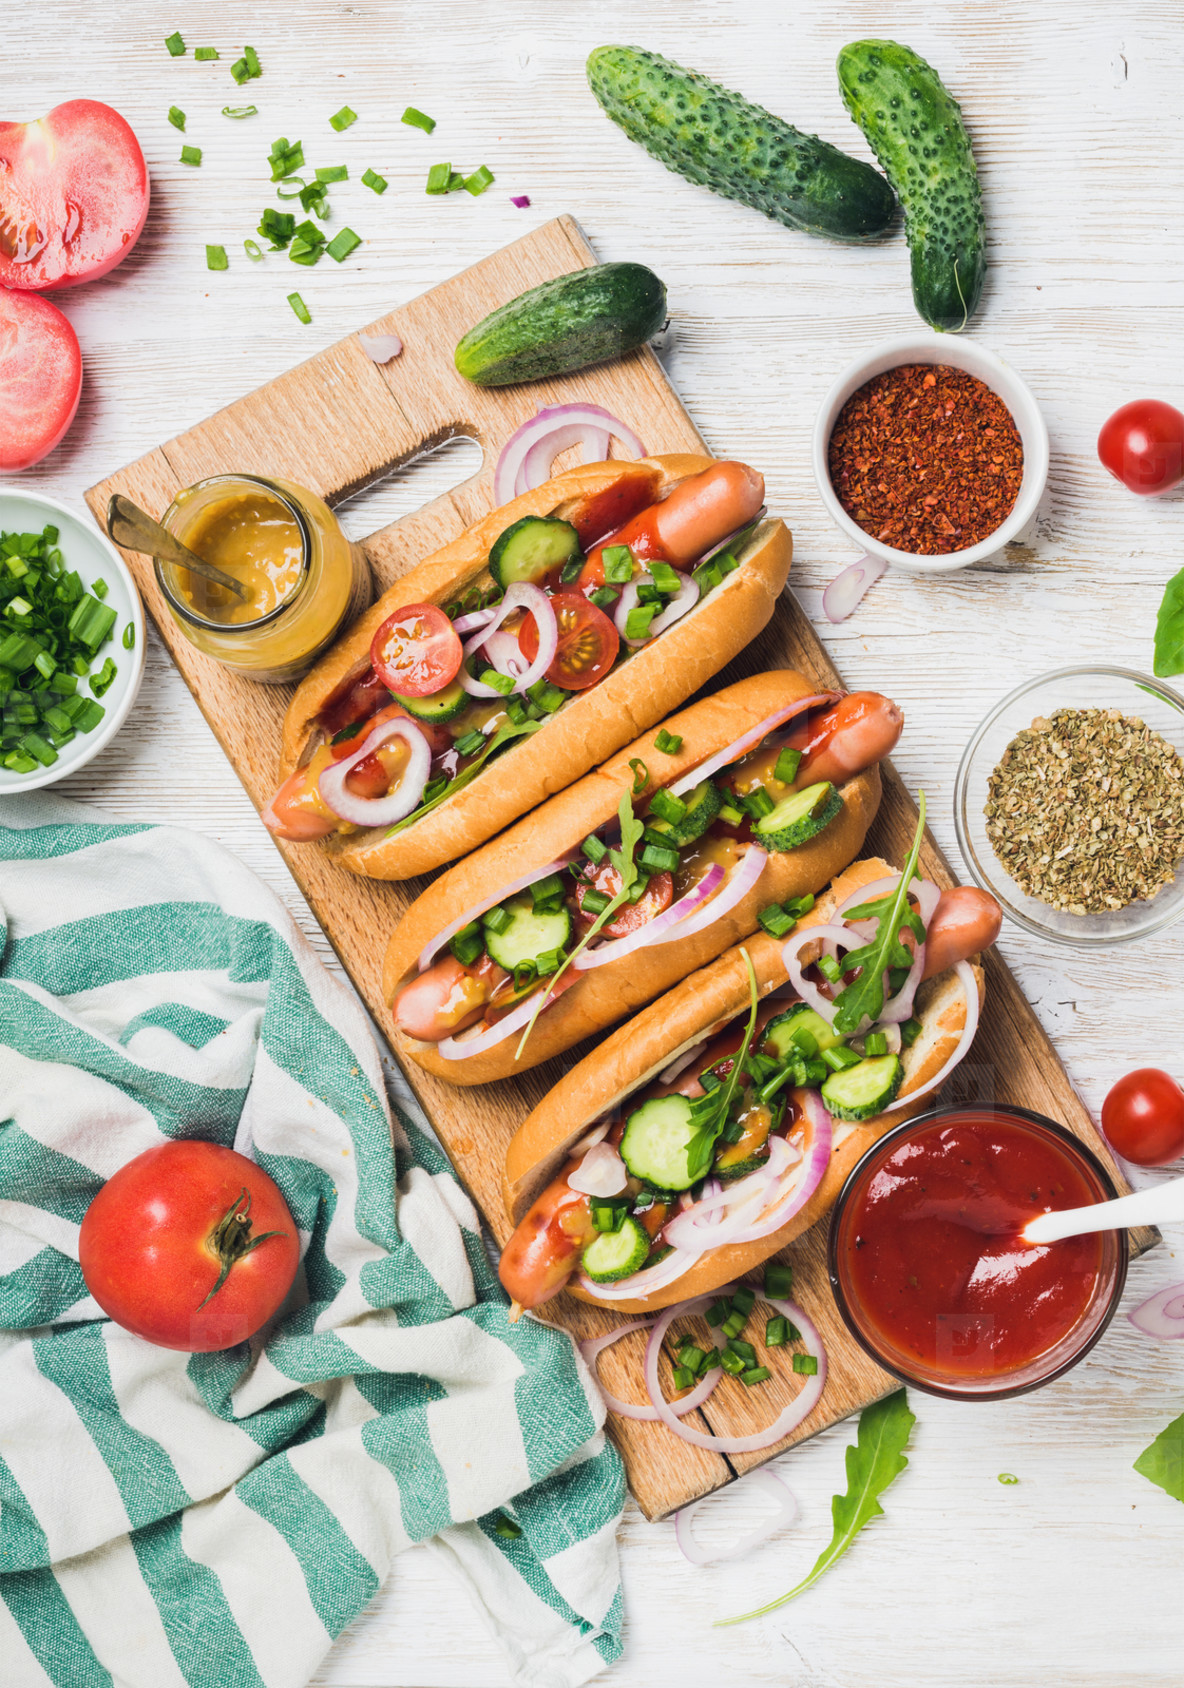 Homemade hot dogs with fresh vegetables and spices over white background